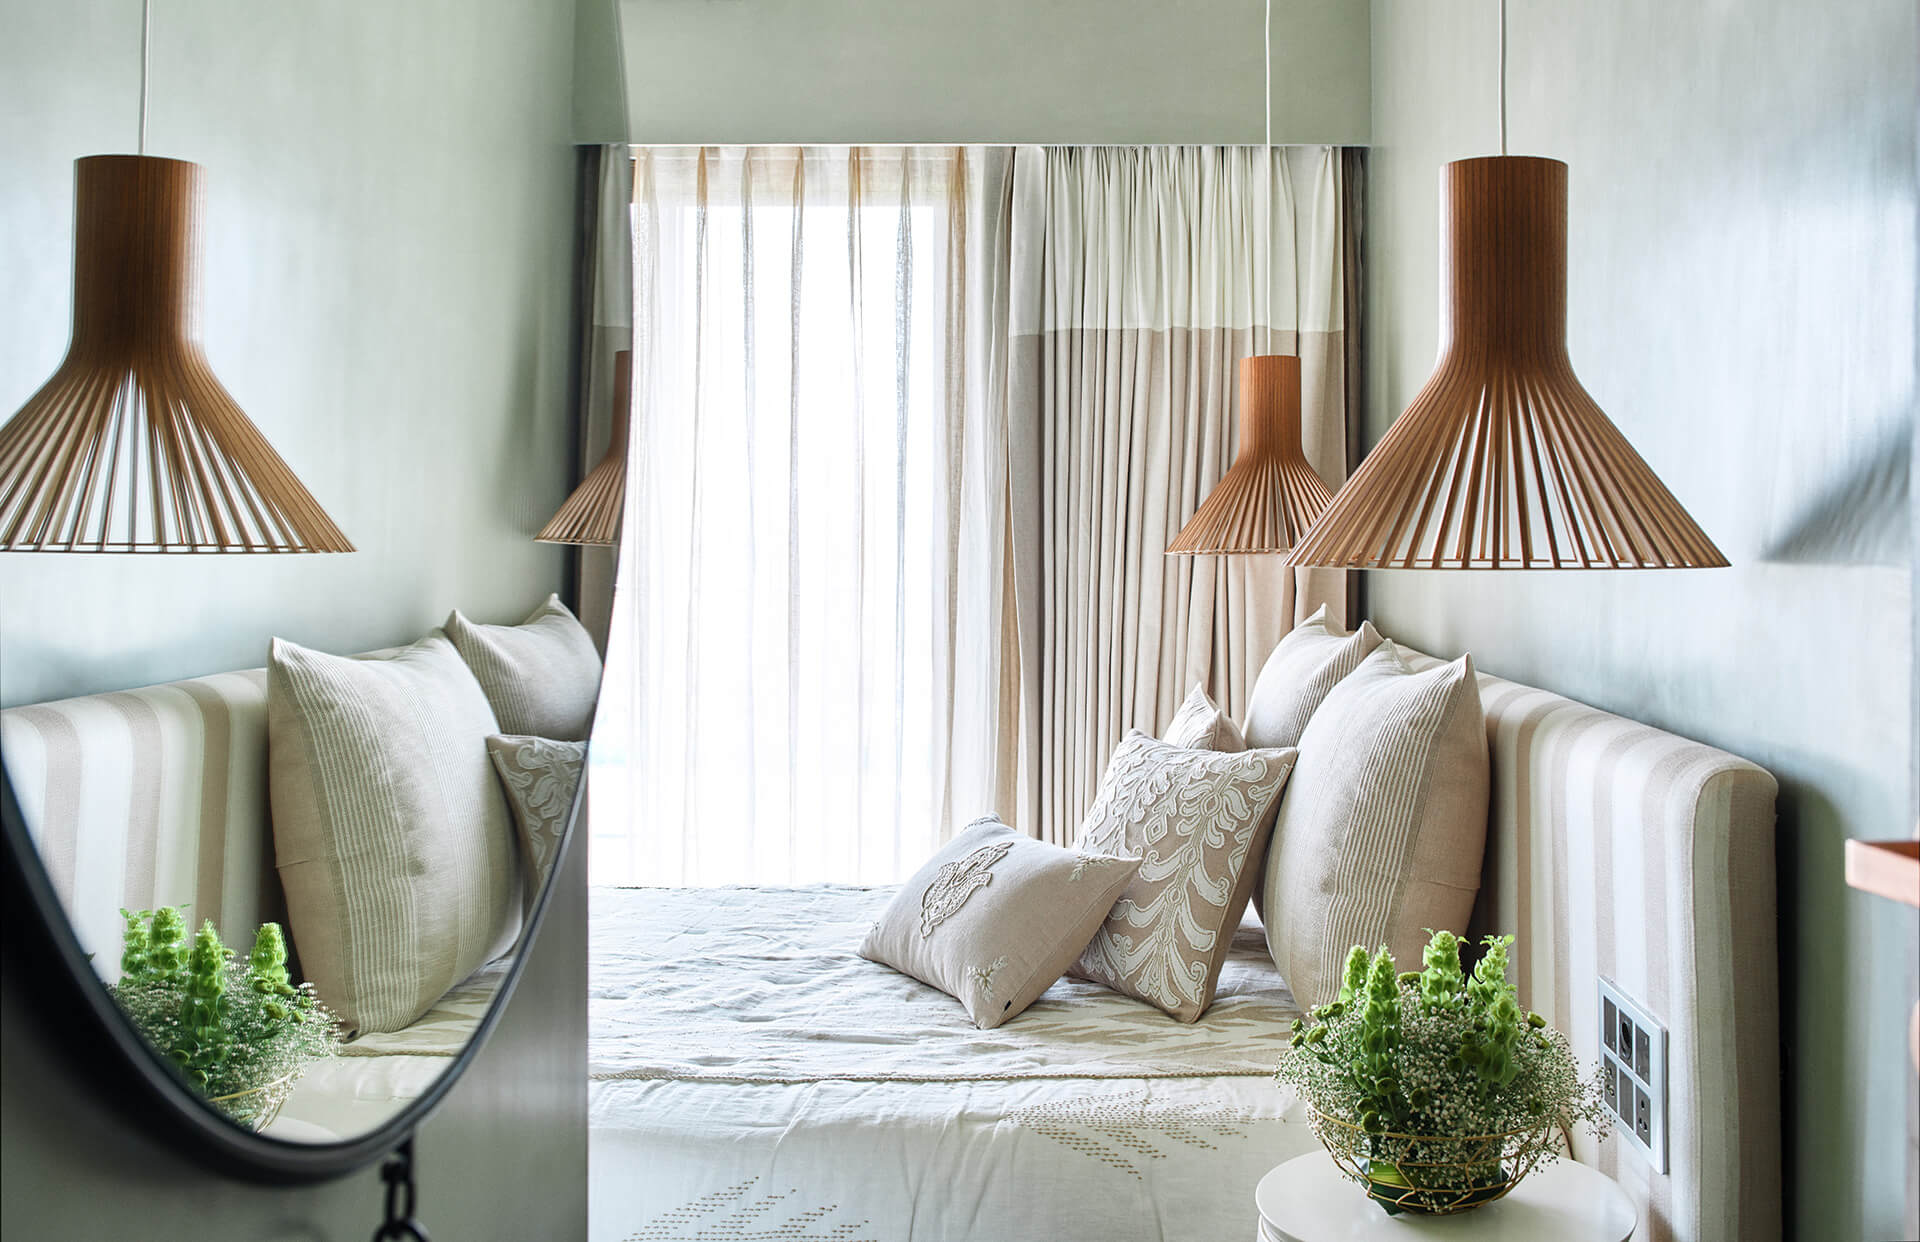 The guest room has a neutral coloured, striped bed with hanging lights from Secto Designs, sheets from Cotton and Satins | Ash Abode designed by FADD Studio | STIRworld